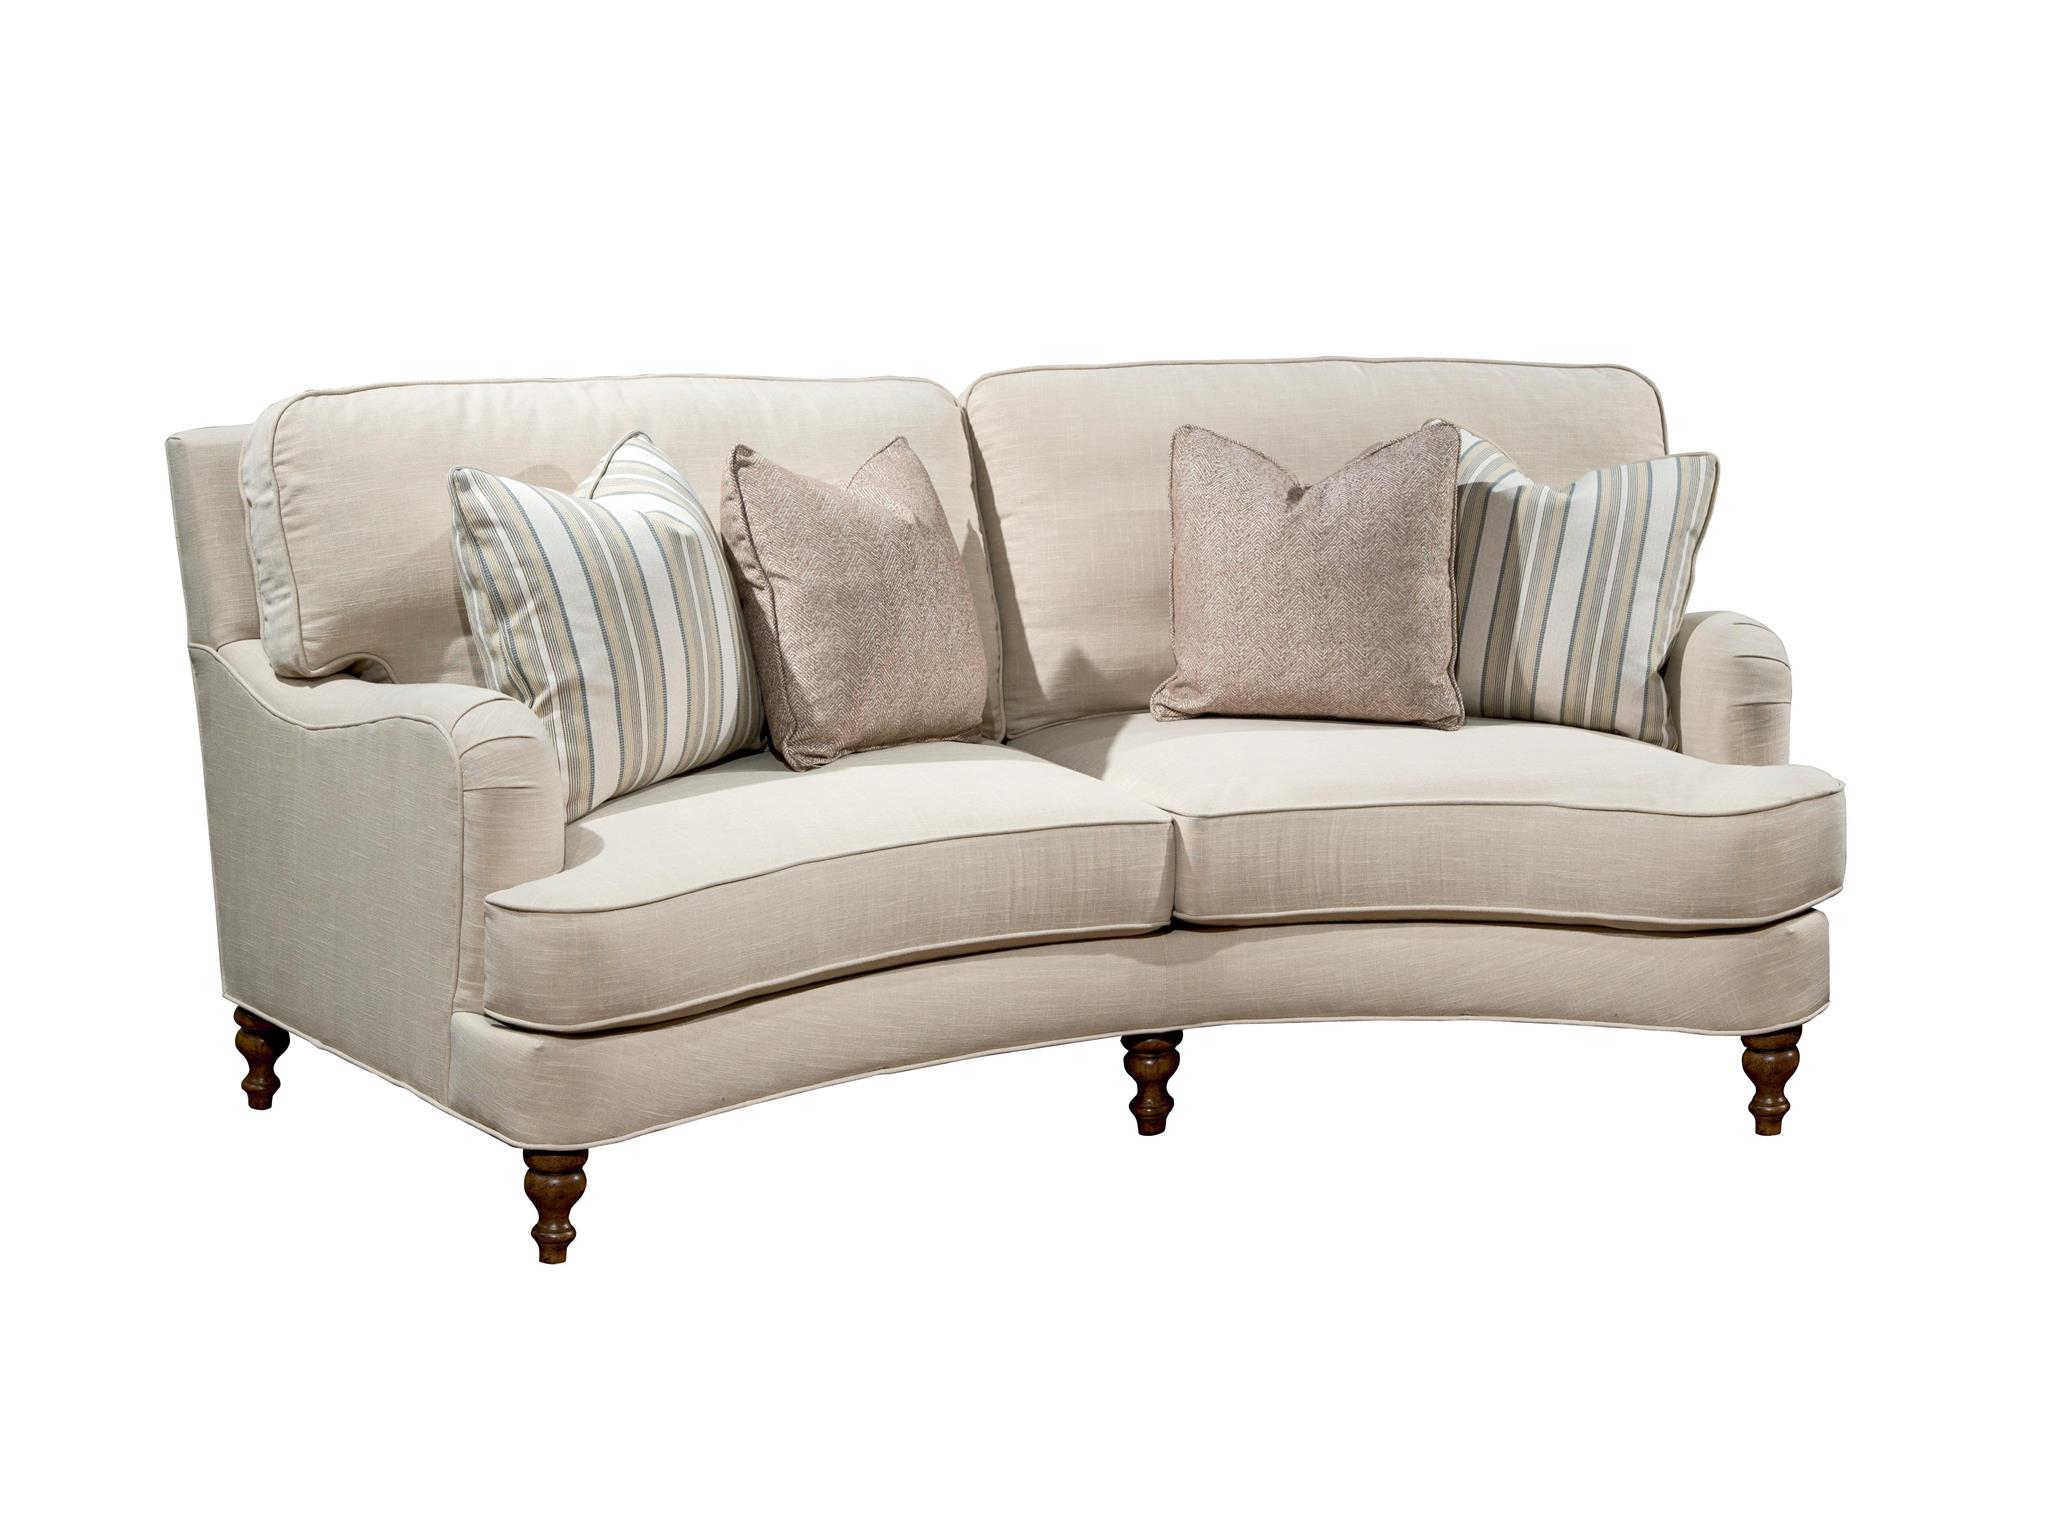 Fine Furniture Design | Grace Sofa Within Grace Sofa Chairs (Image 1 of 20)